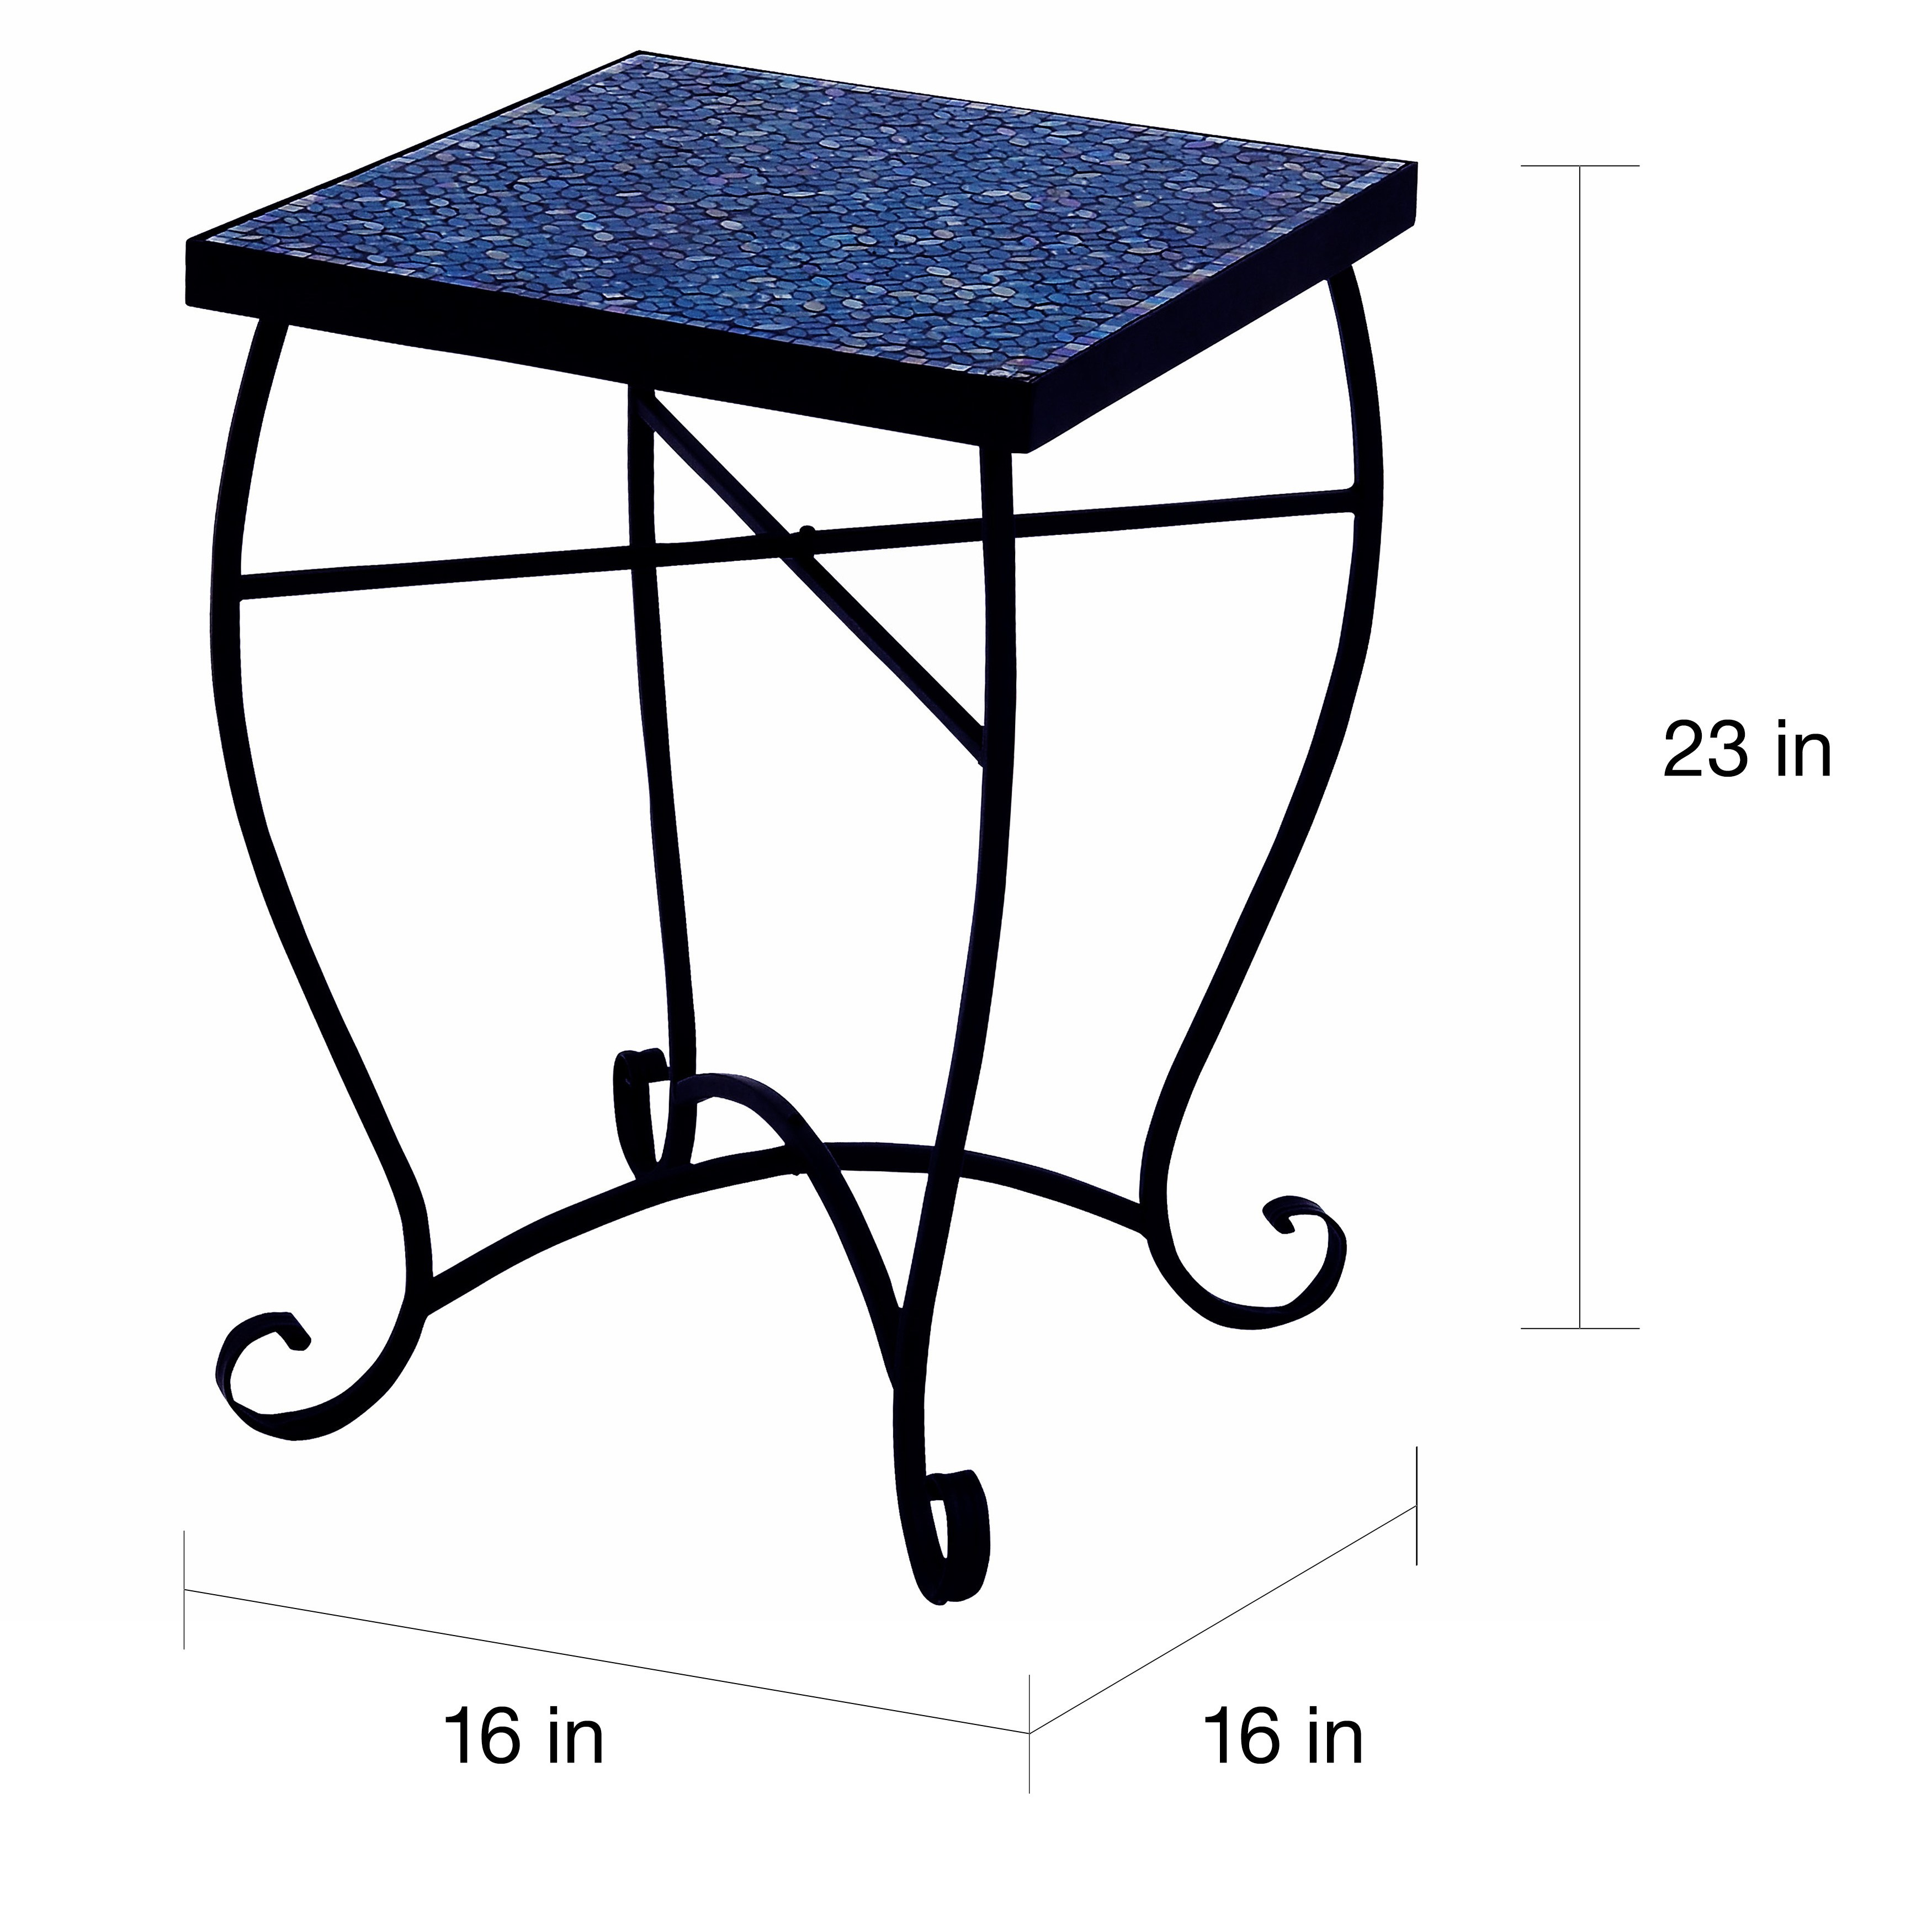 moroccan mosaic blue square side accent table free shipping outdoor today inch wide white ginger jar lamps headboards contemporary end round tablecloth kitchen and chairs set